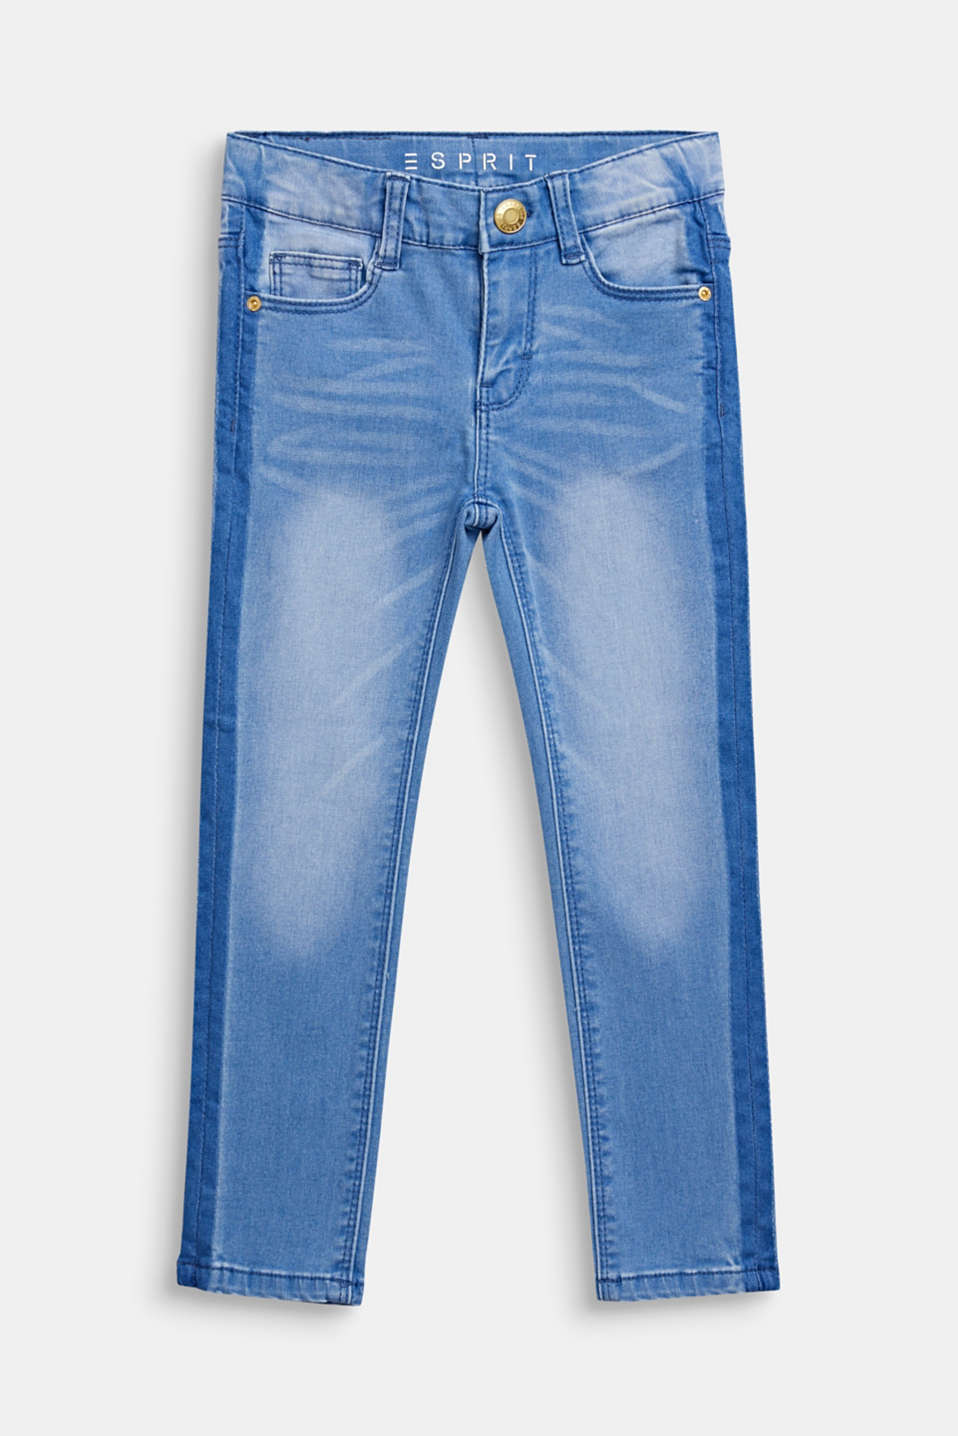 Esprit - Jeans in a trendy garment wash, adjustable waistband